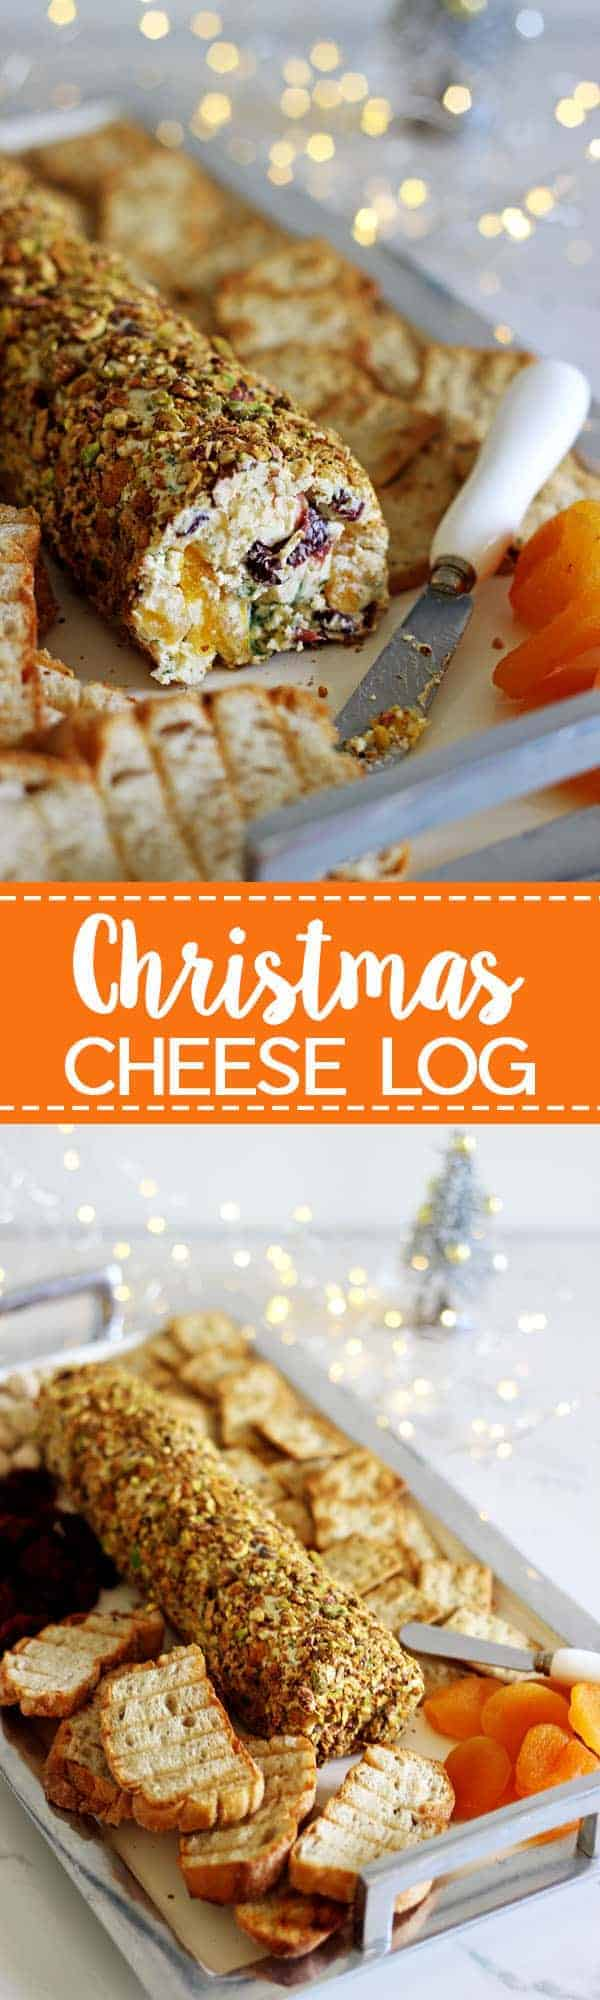 Christmas cheese log - the perfect quick, easy & delicious Christmas appetizer to feed a crowd! Make in advance and serve with crackers and toasted bread | thekiwicountrygirl.com